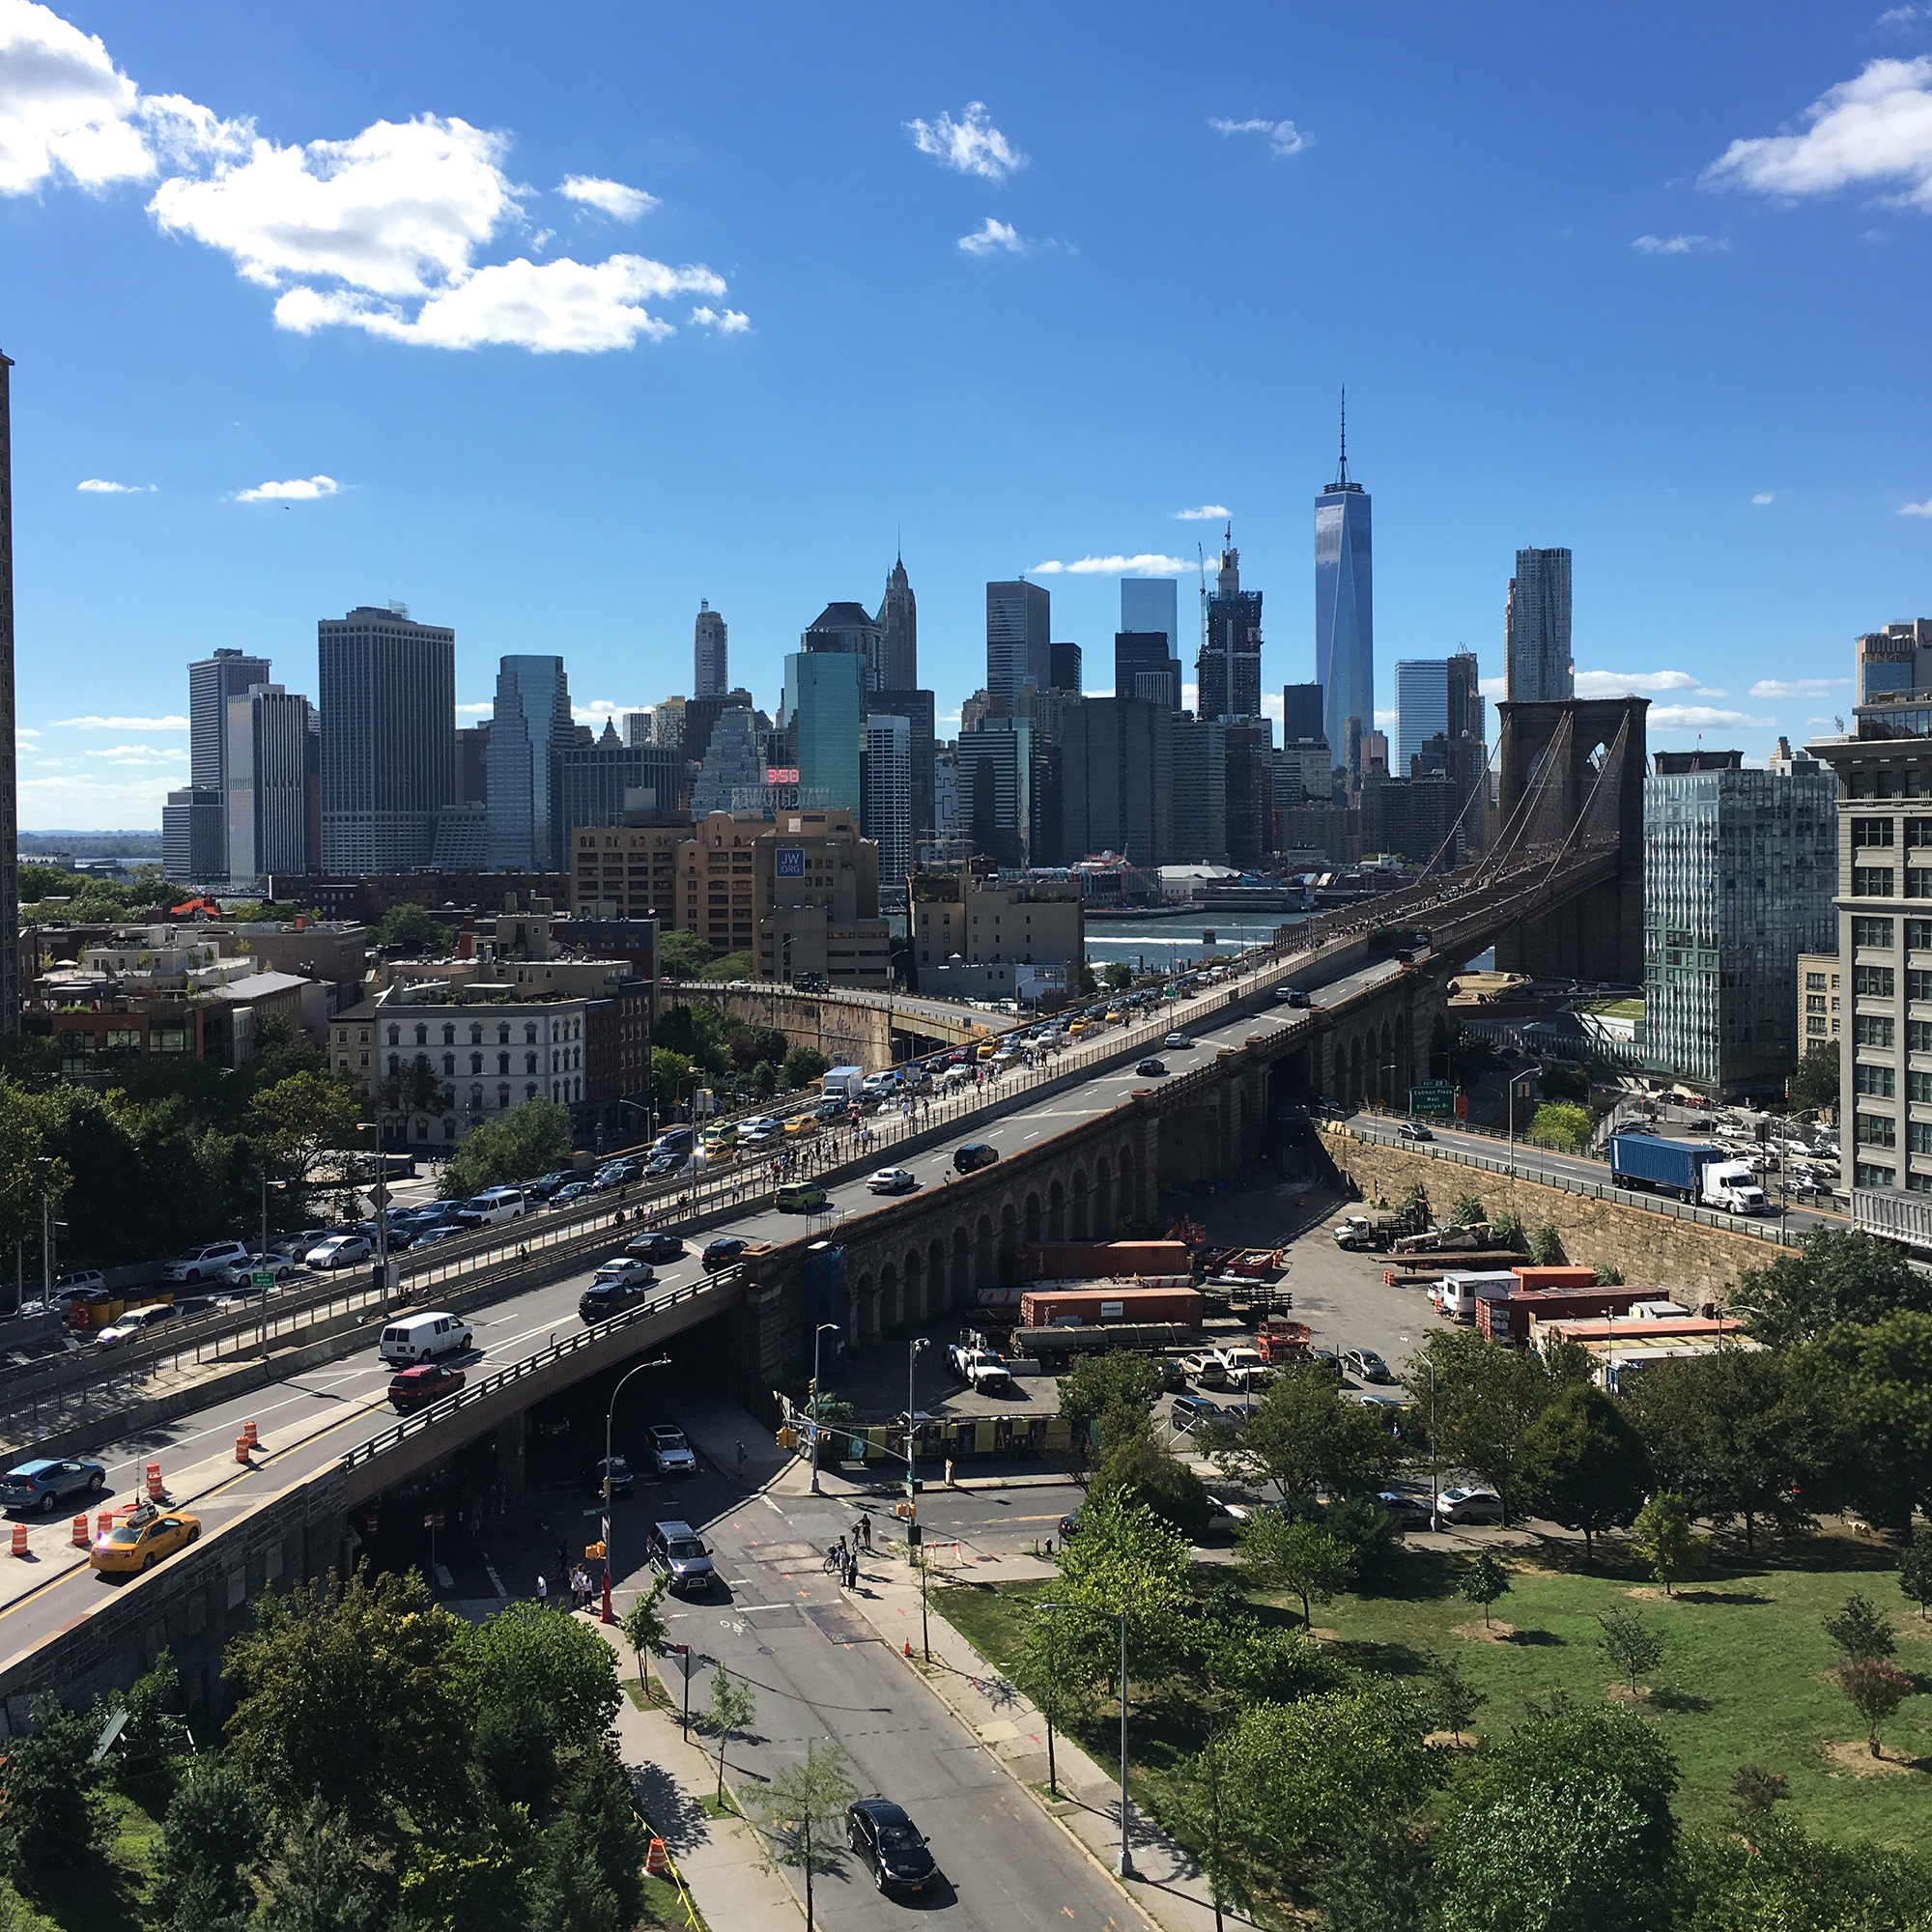 The view of Manhattan from Etsy HQ in Brooklyn